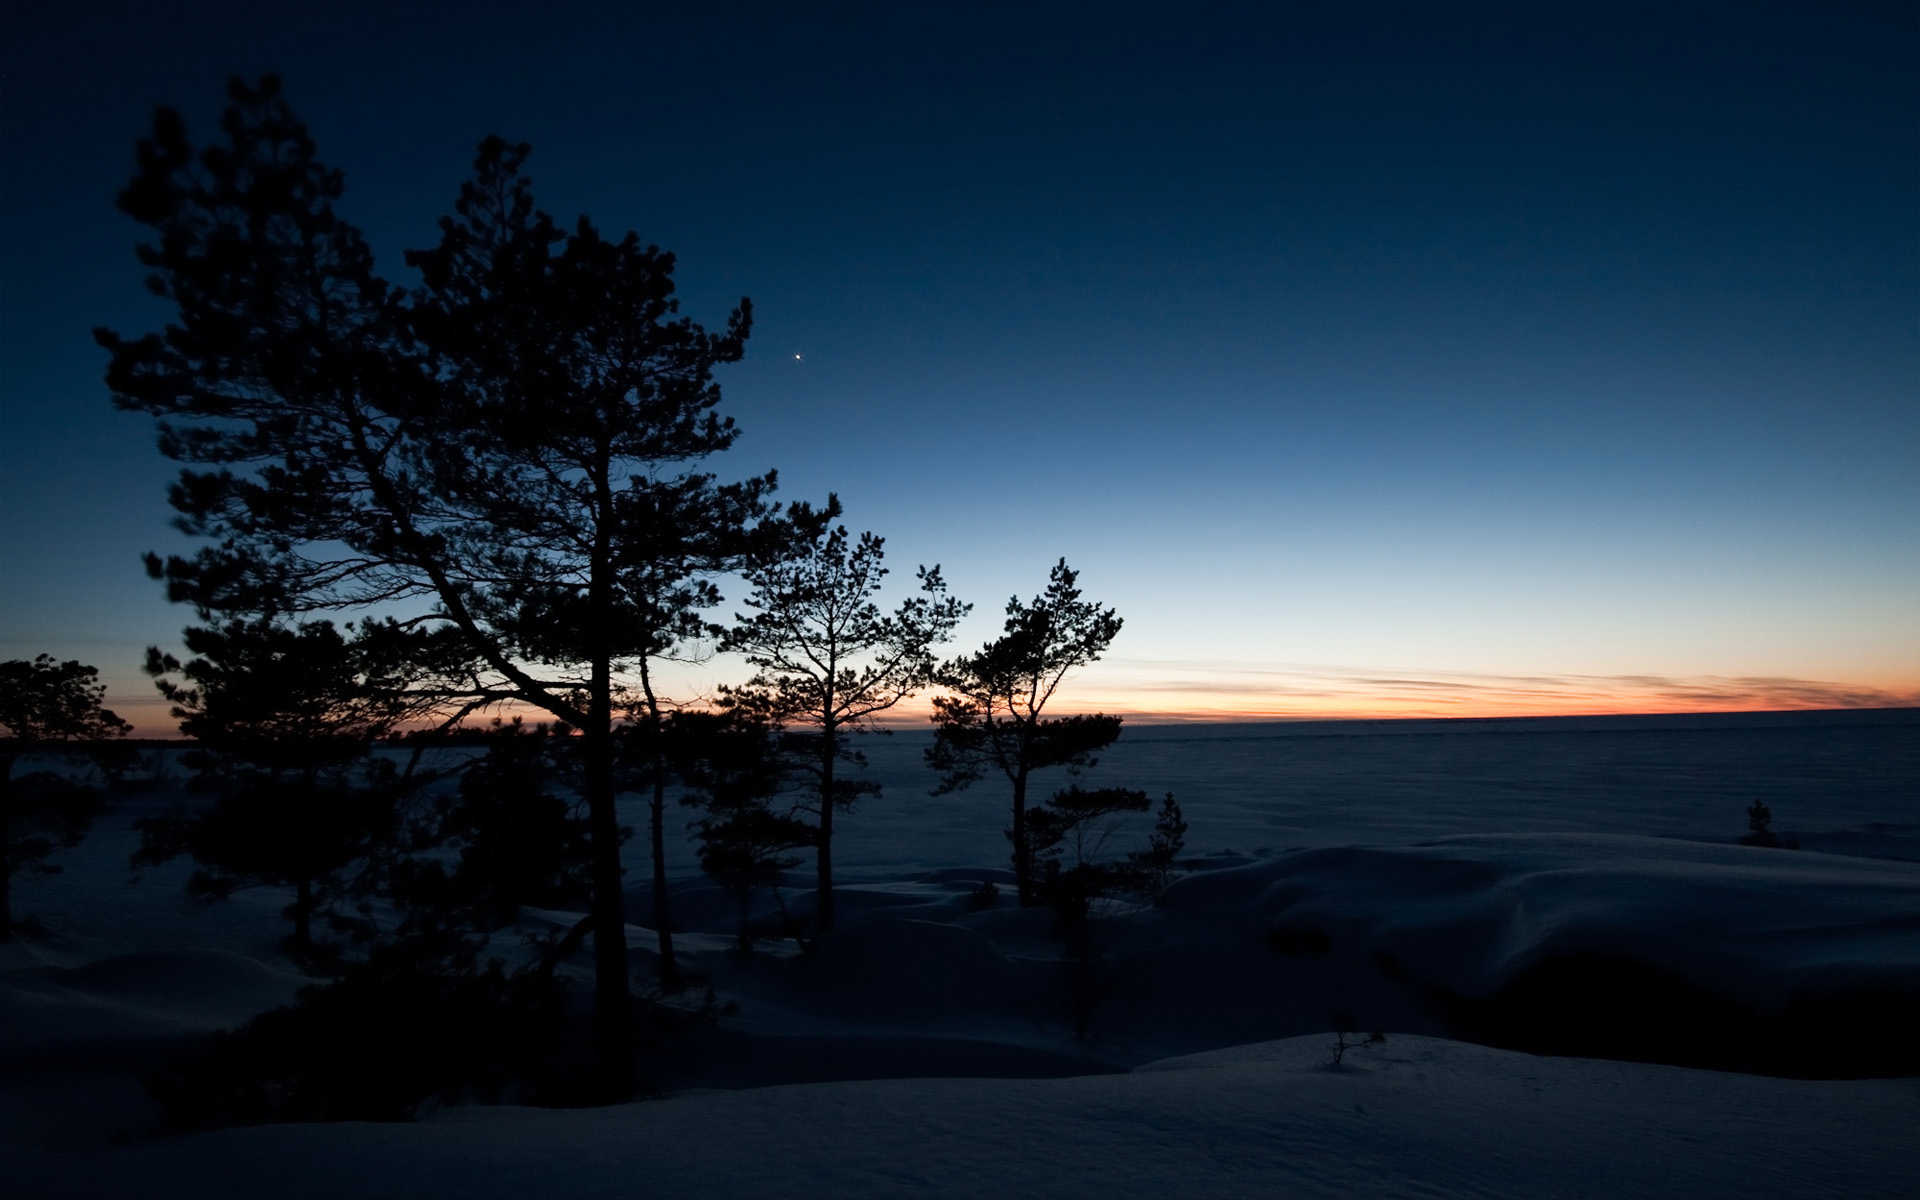 Winter Dusk by Smattila Winter Dusk by Smattila